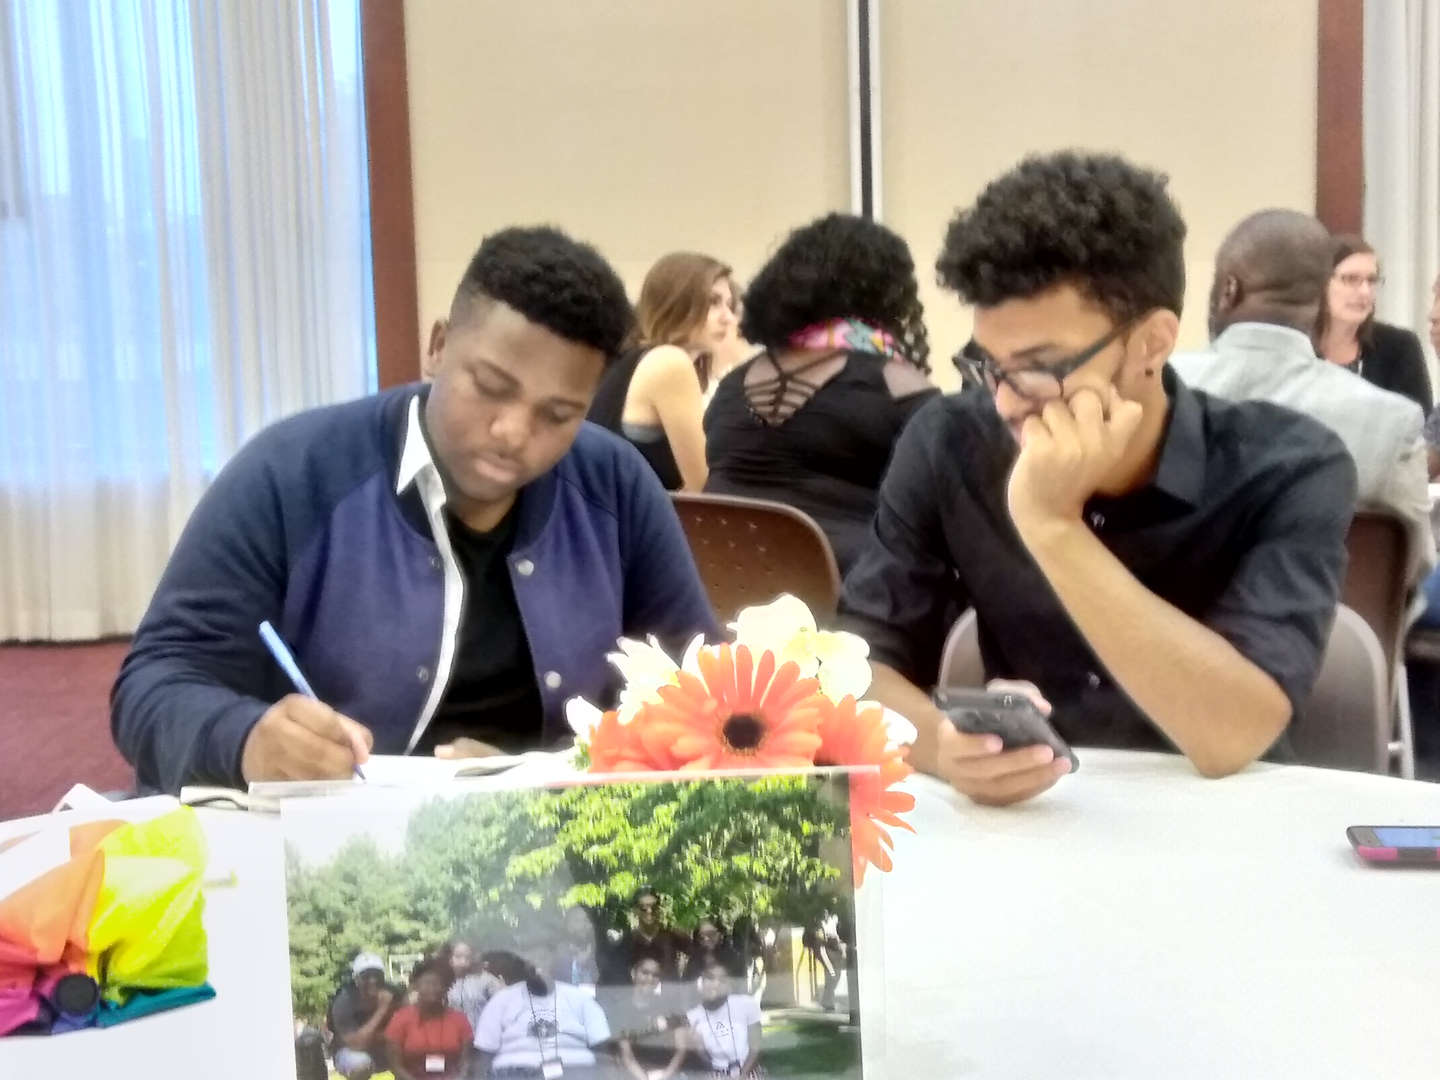 students work at table Peer Forward Summer Training